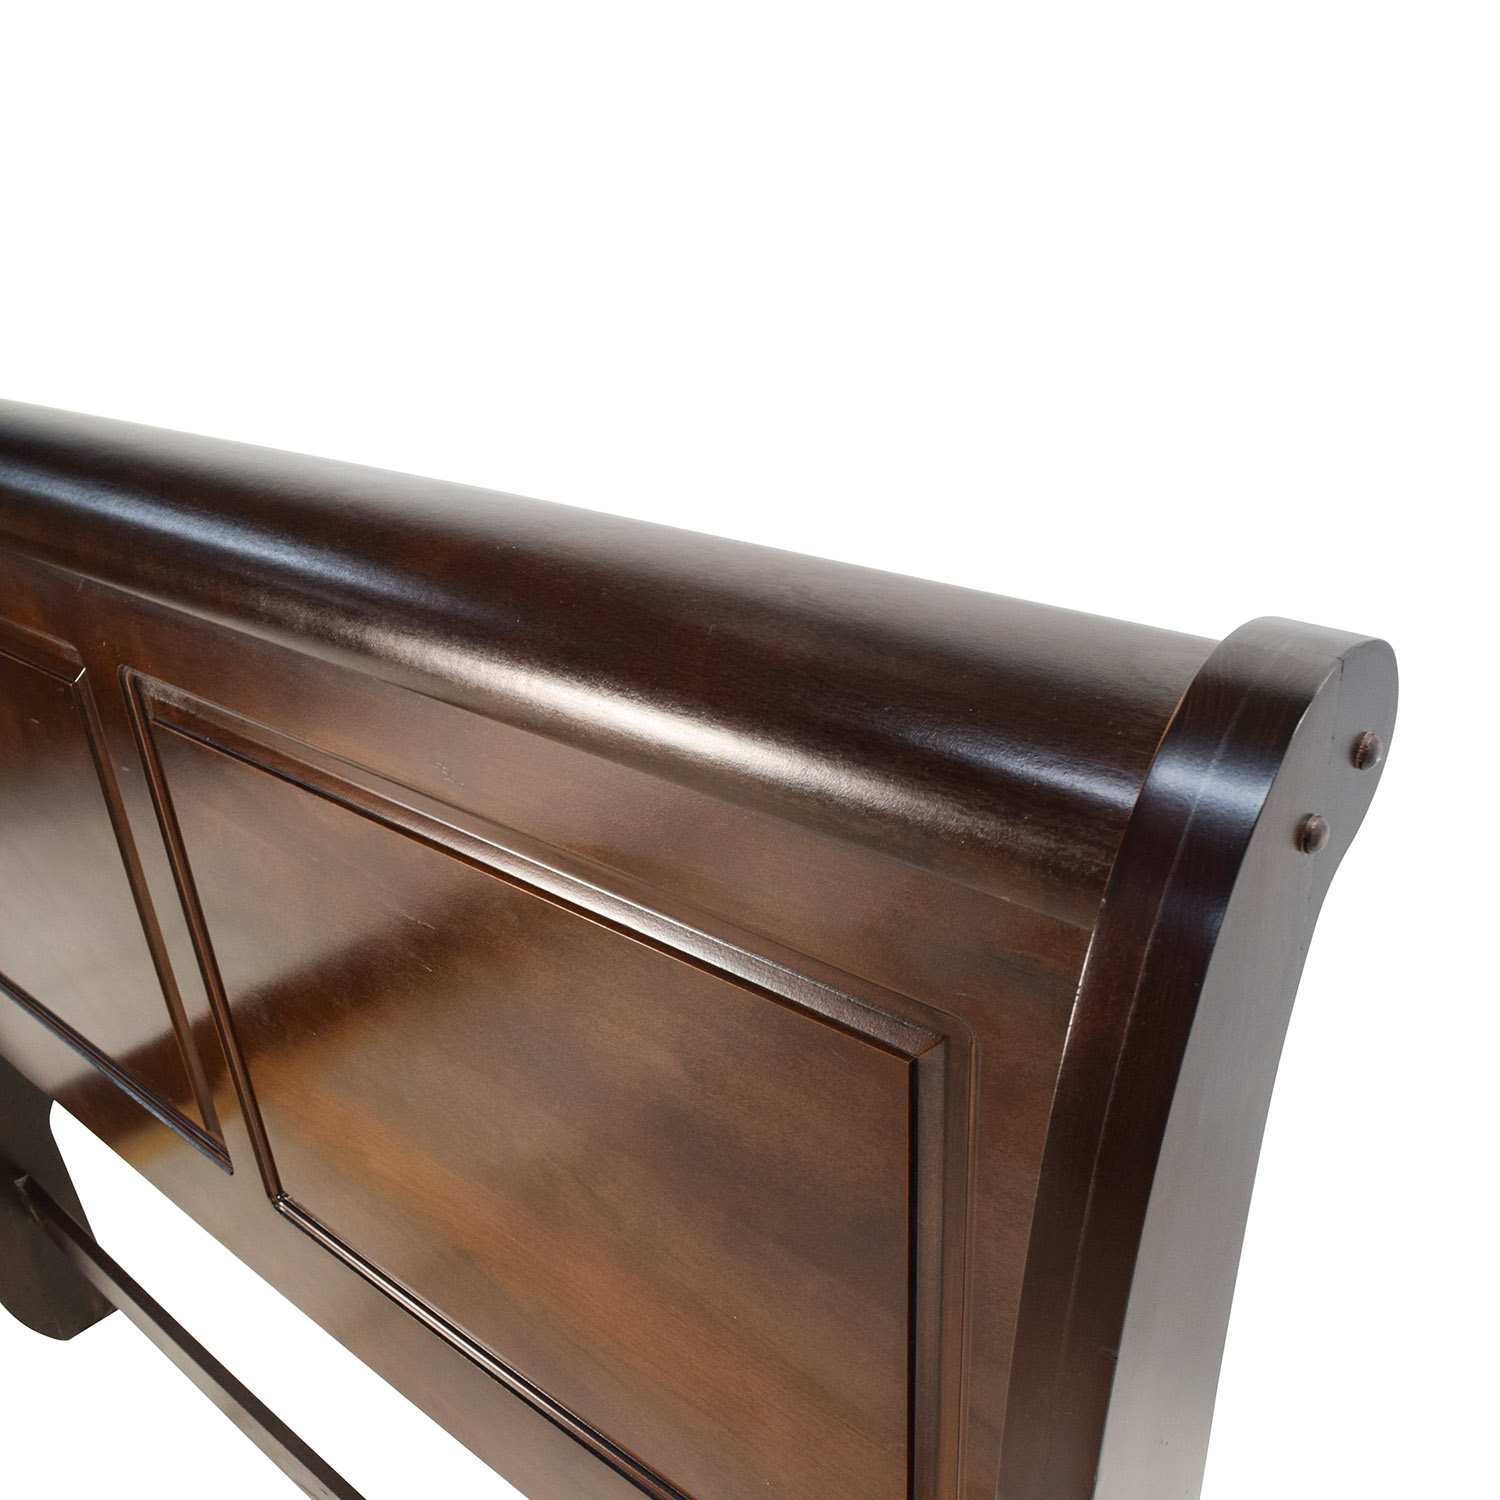 ... Raymour and Flanigan Raymour & Flanigan Charleston Queen Sleigh Bed for  sale